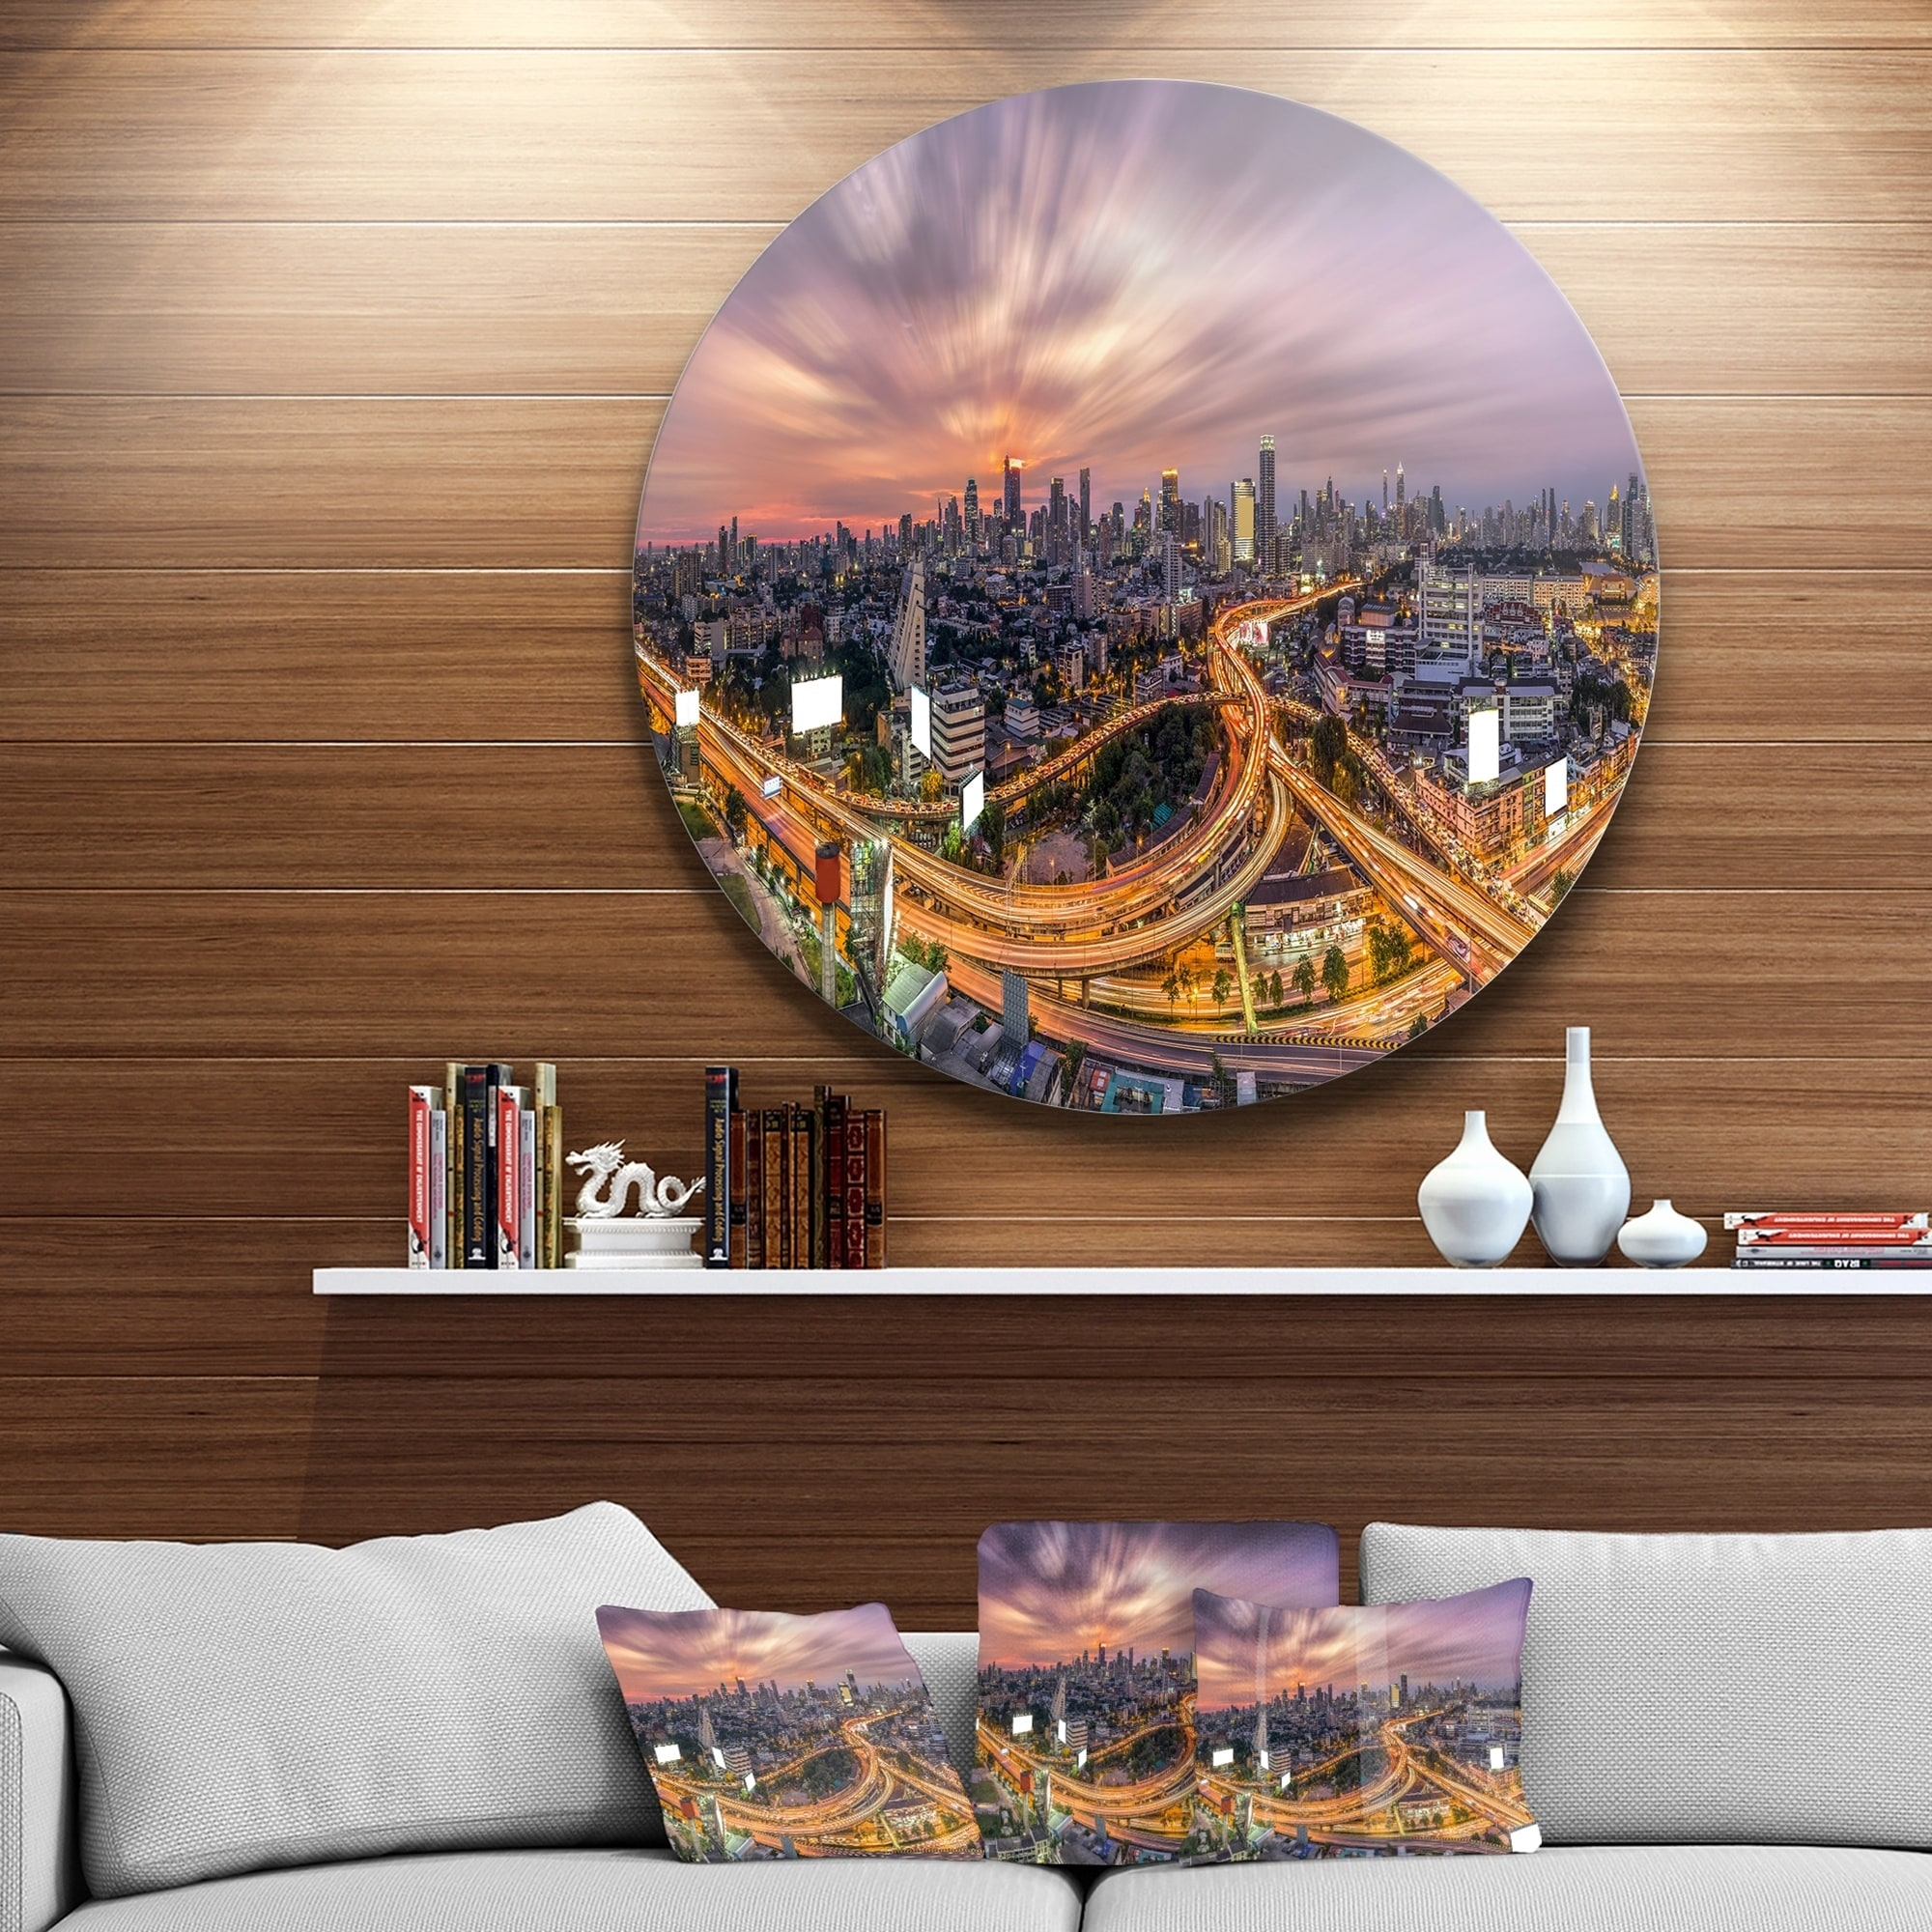 Designart Bangkok S Shaped Express Way Cityscape Circle Wall Art Overstock 14250192